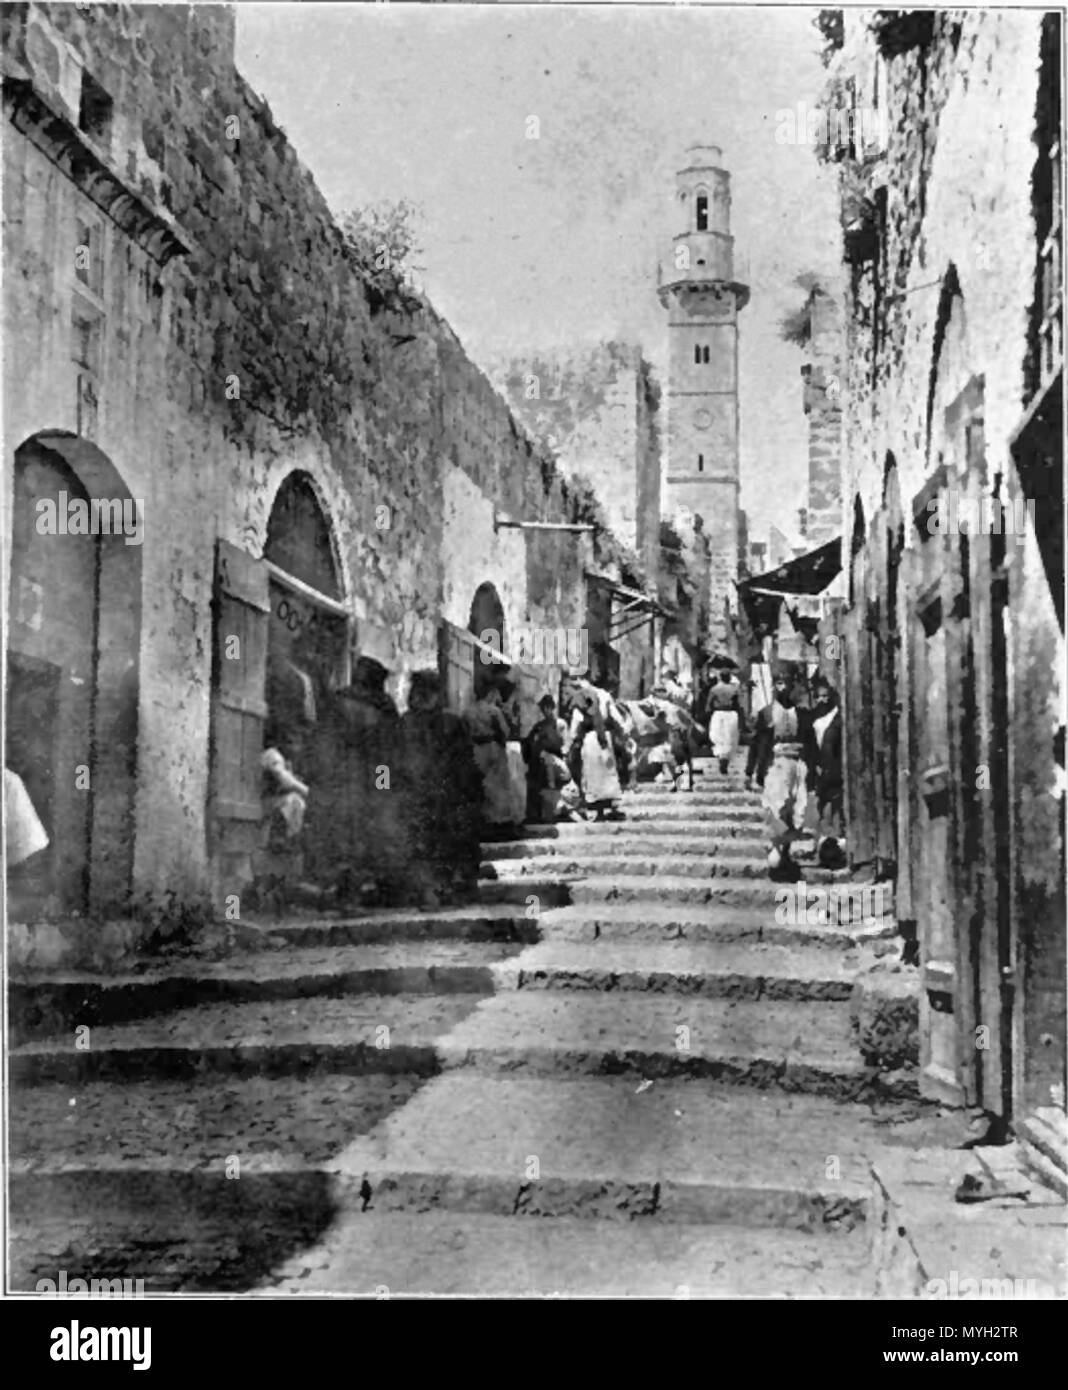 Dely Atay-Atayan (1914?004) picture